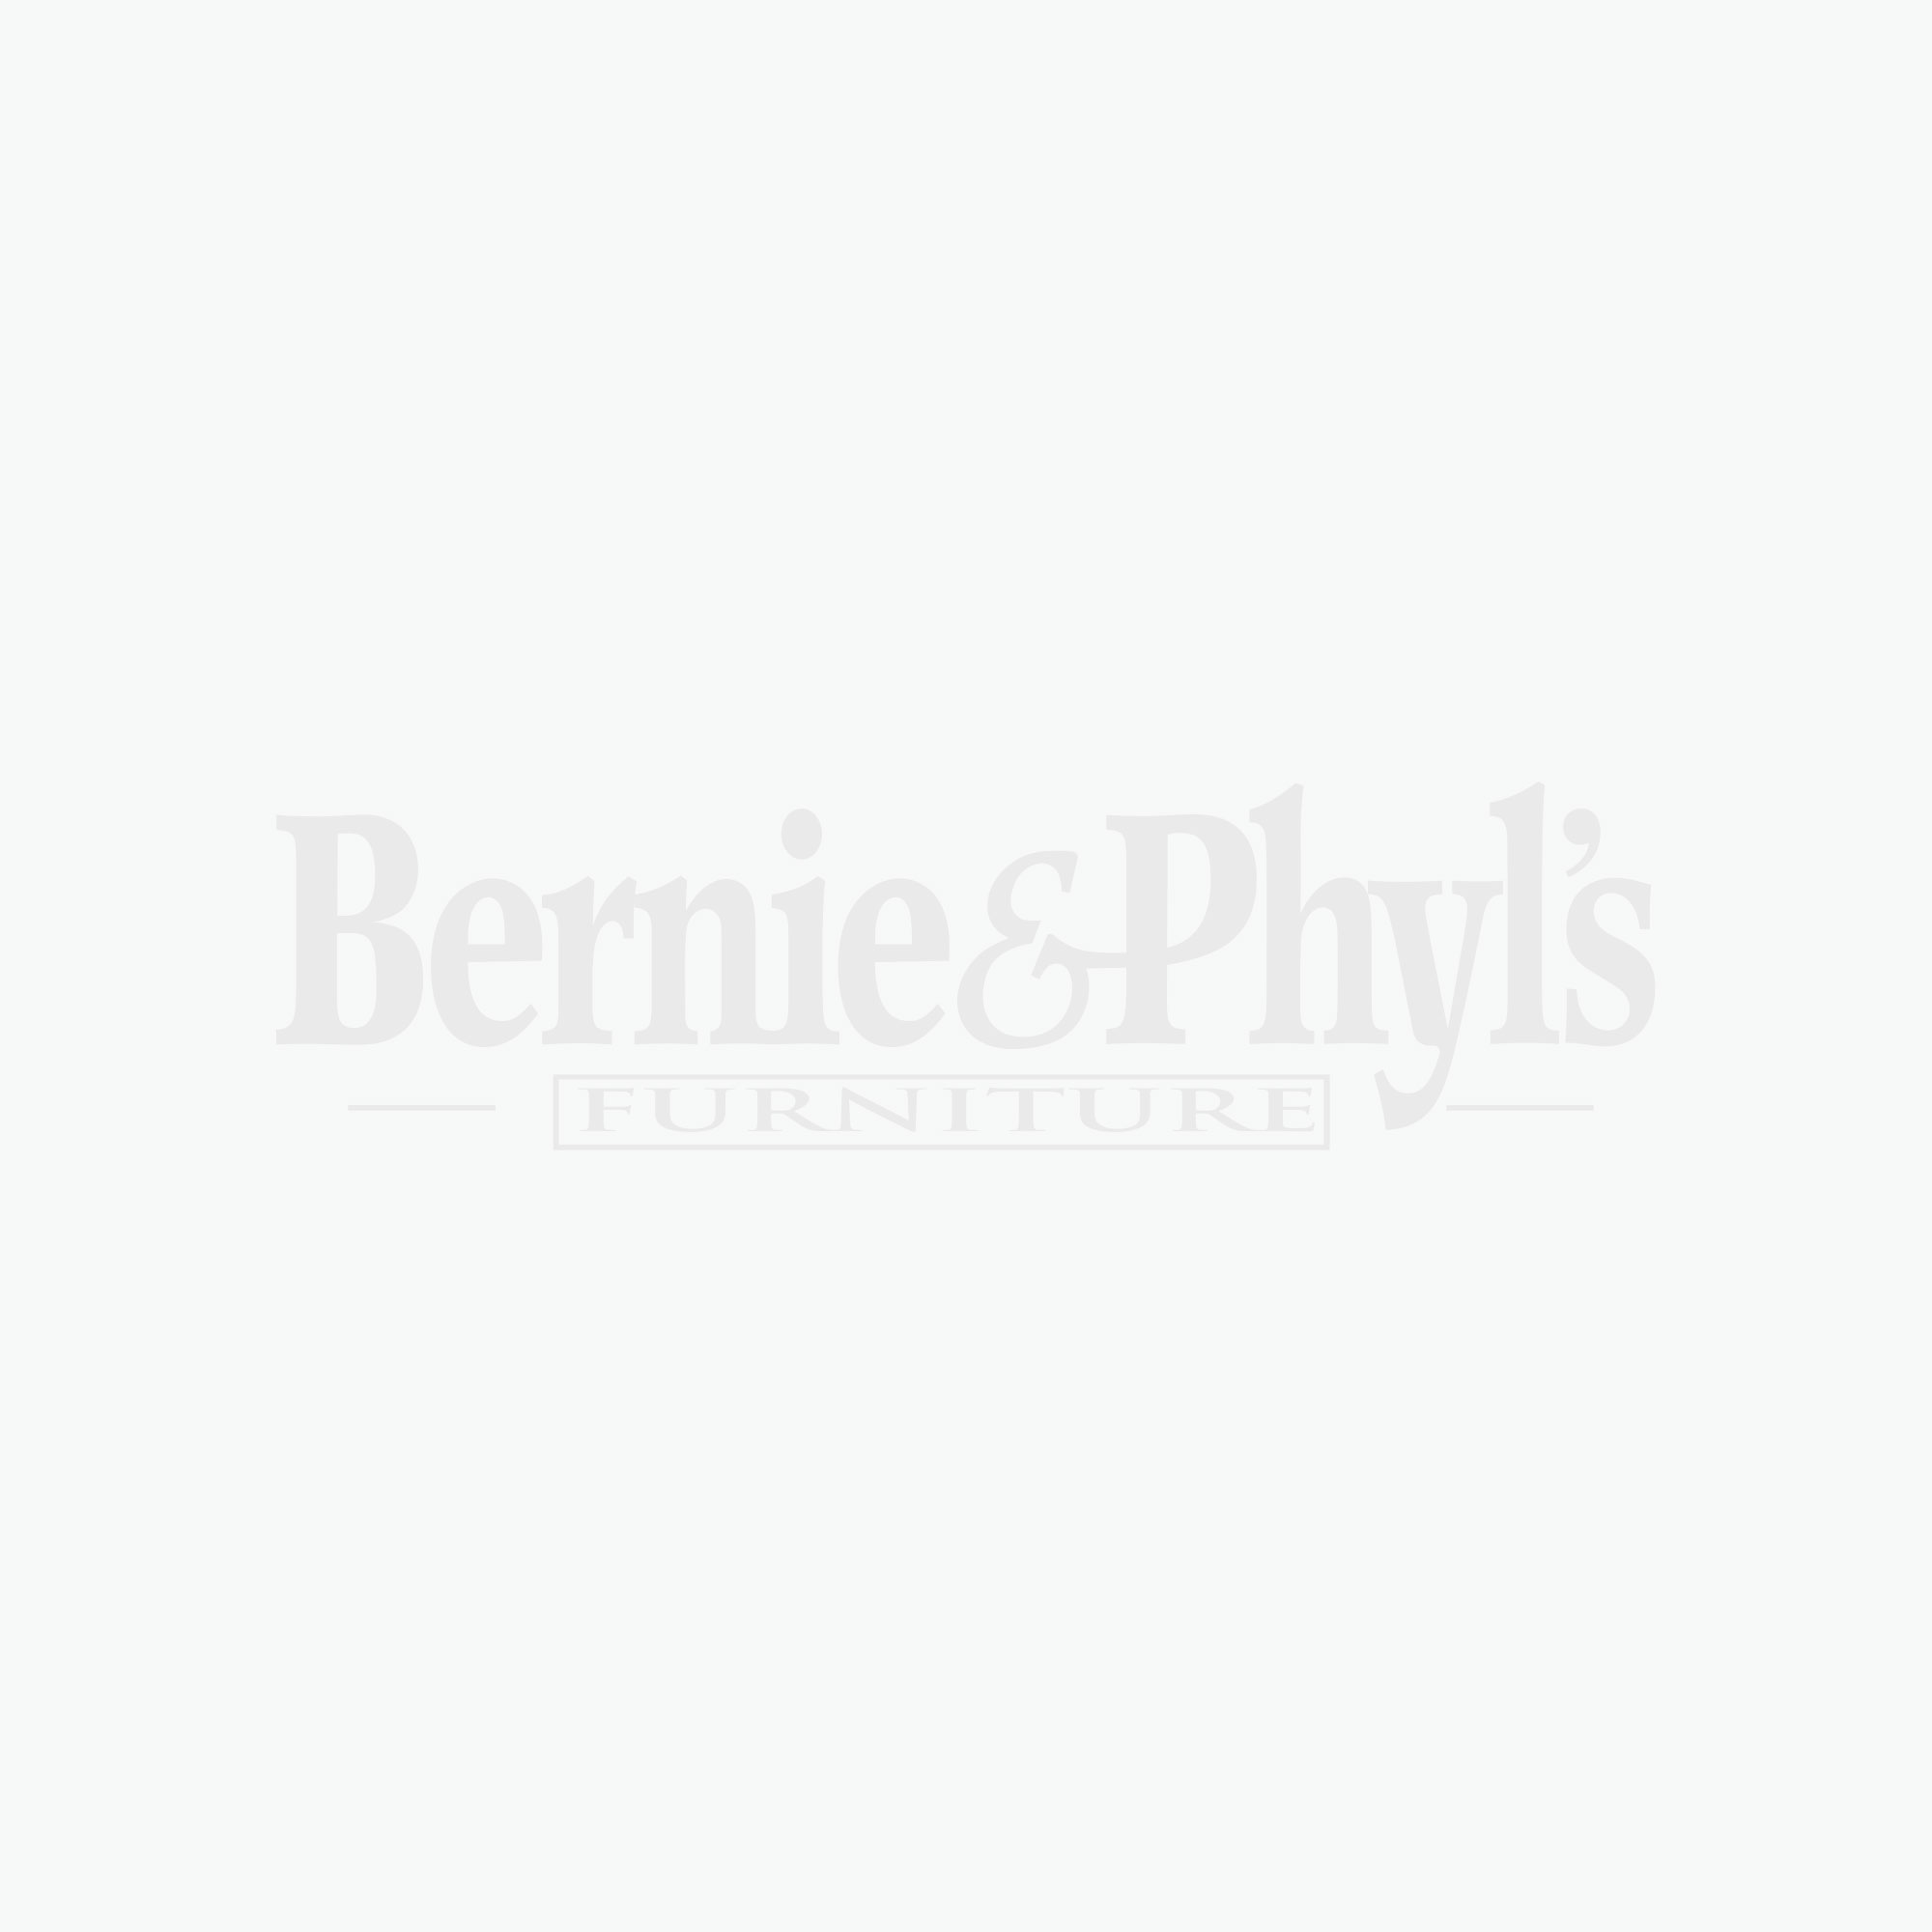 BunkHouse Driftwood Bookcase